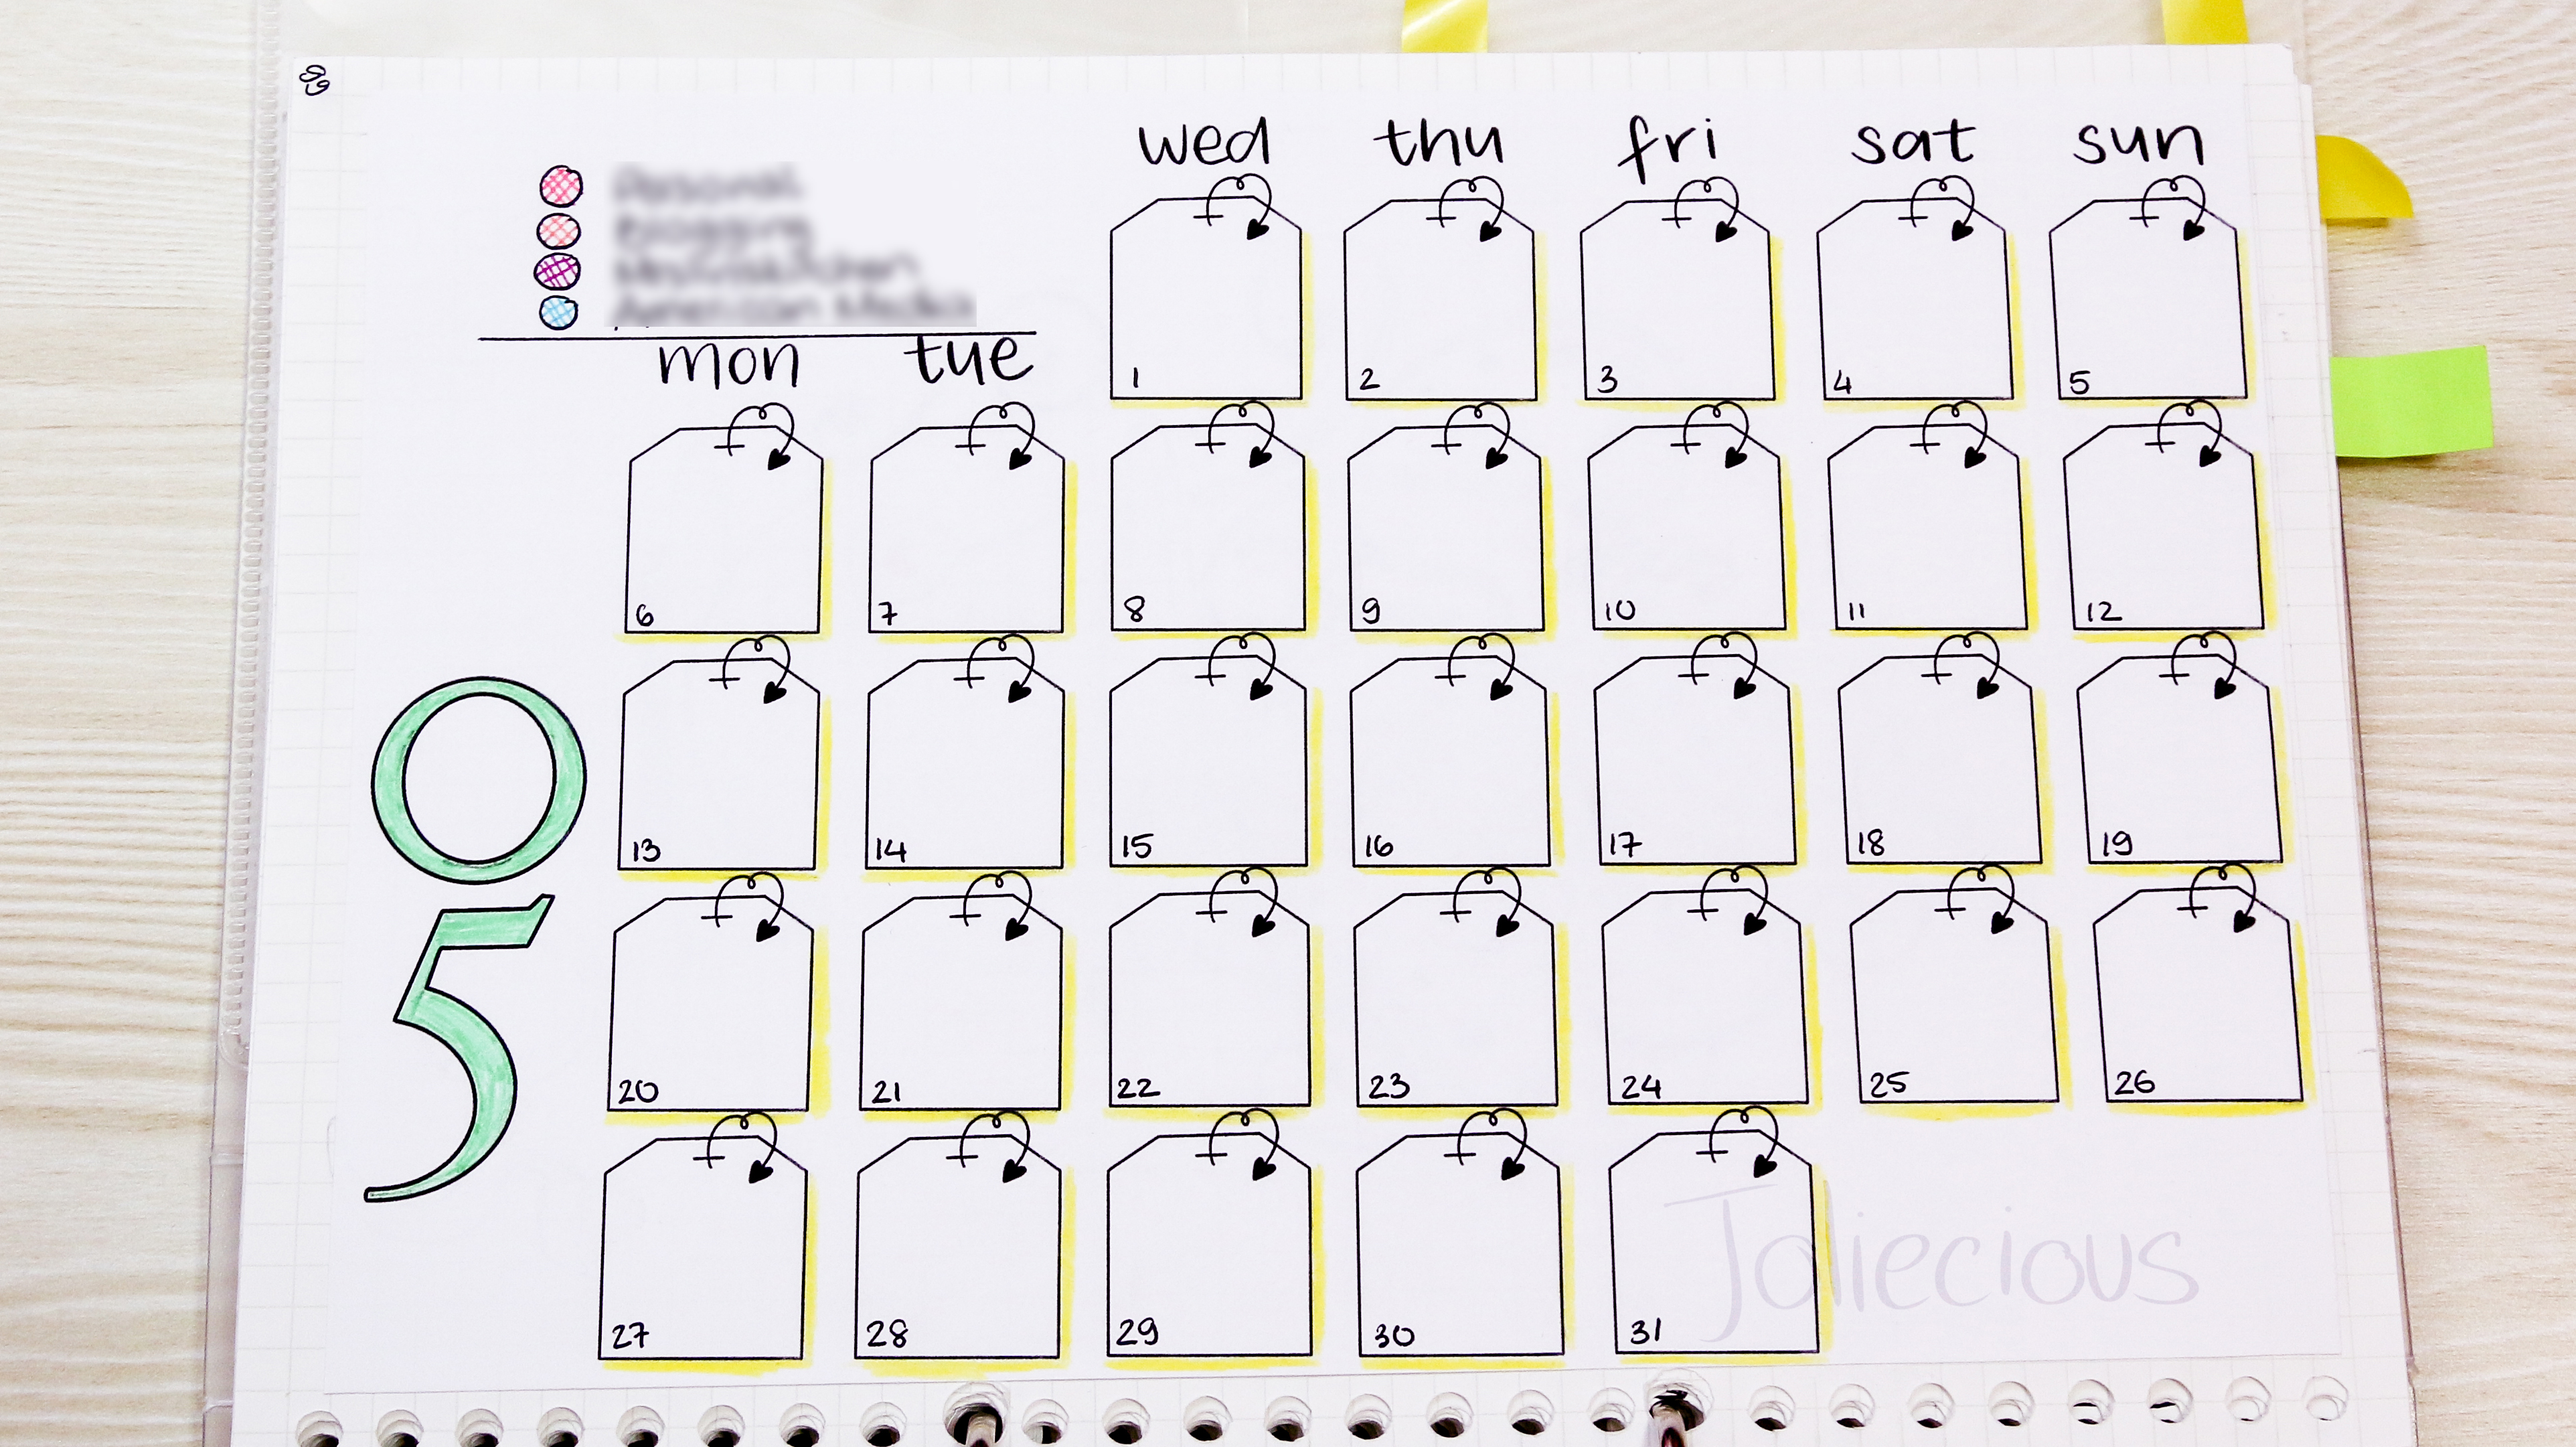 photo about Bullet Journal Symbols Printable titled May well 2019 Bullet Magazine Set up: Tea Topic Application with Me